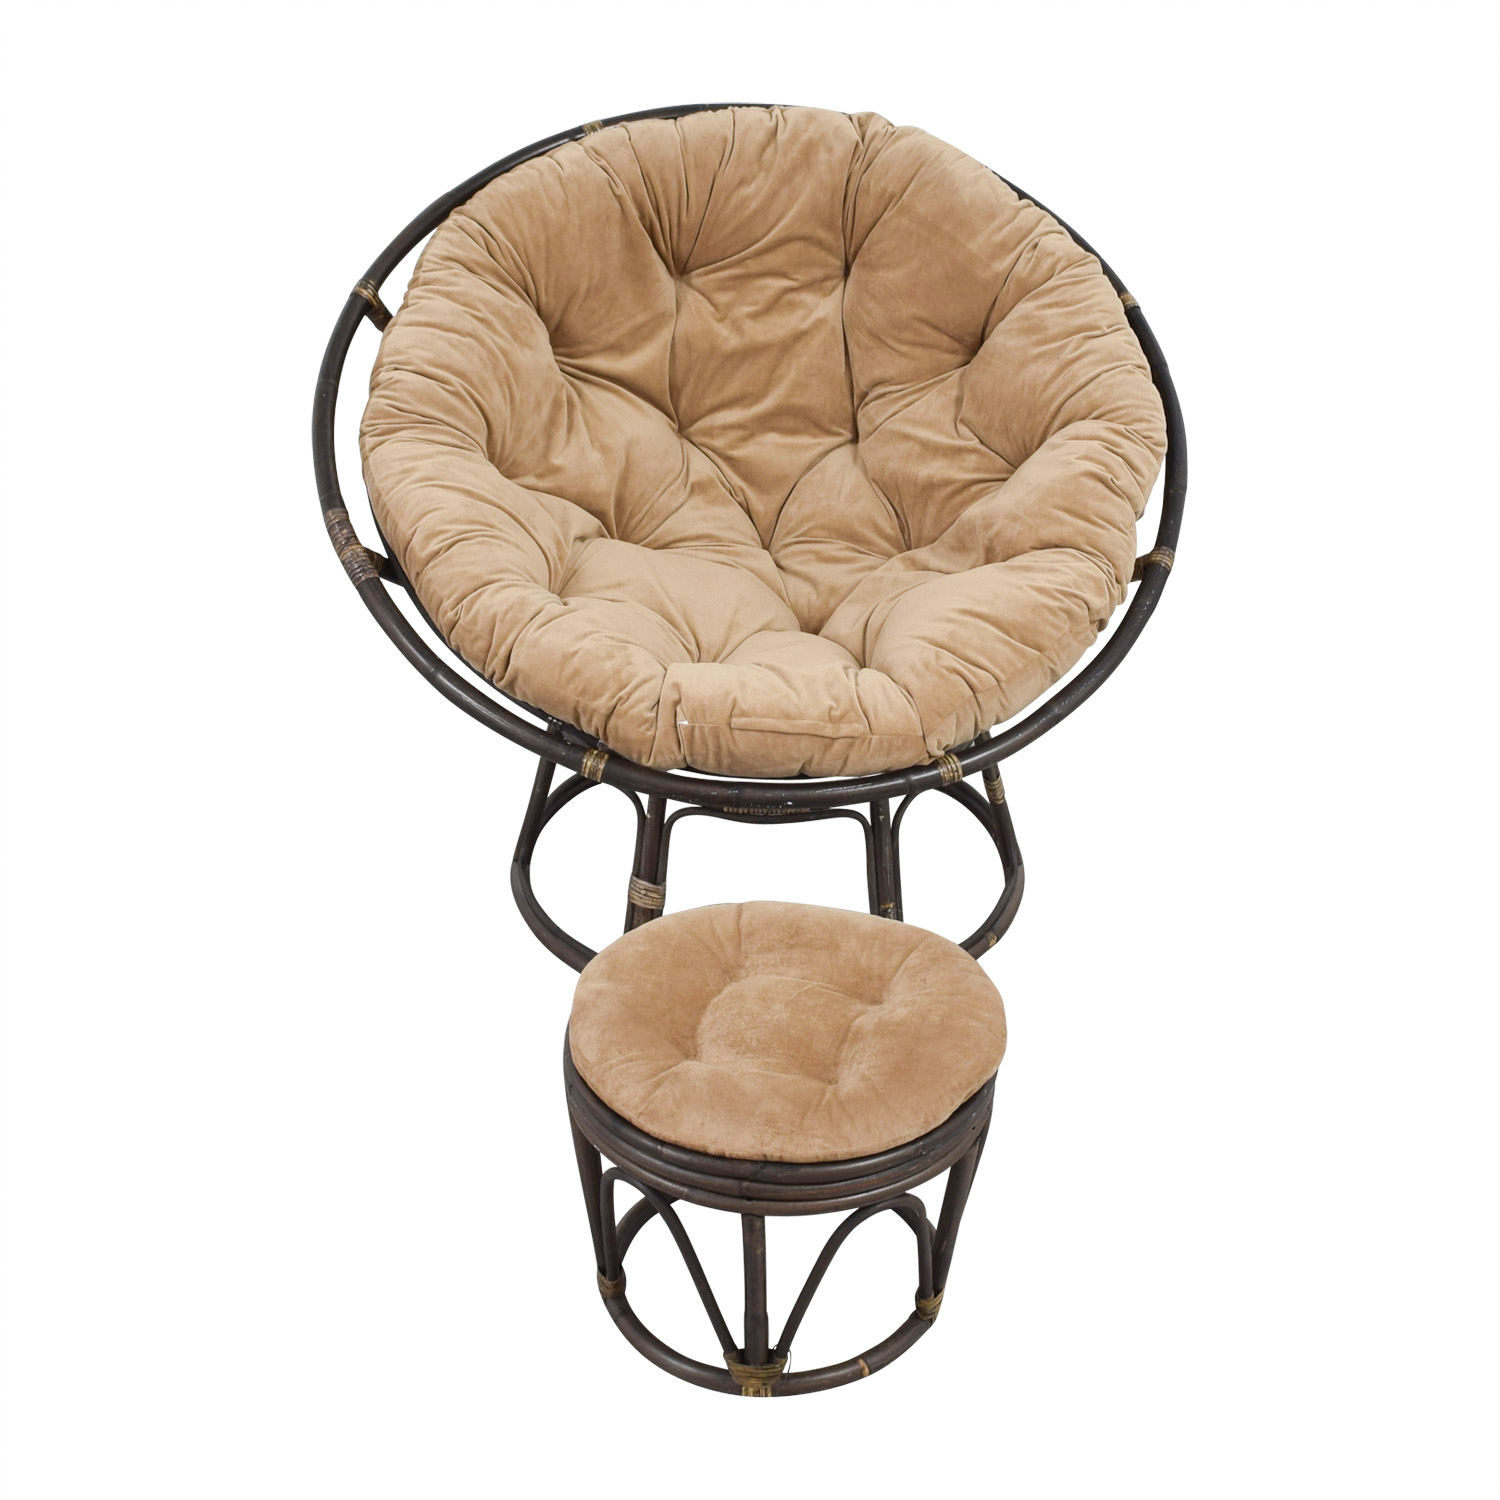 Pier 1 Imports Pier 1 Imports Papasan Brown Lounge Chair and Ottoman discount